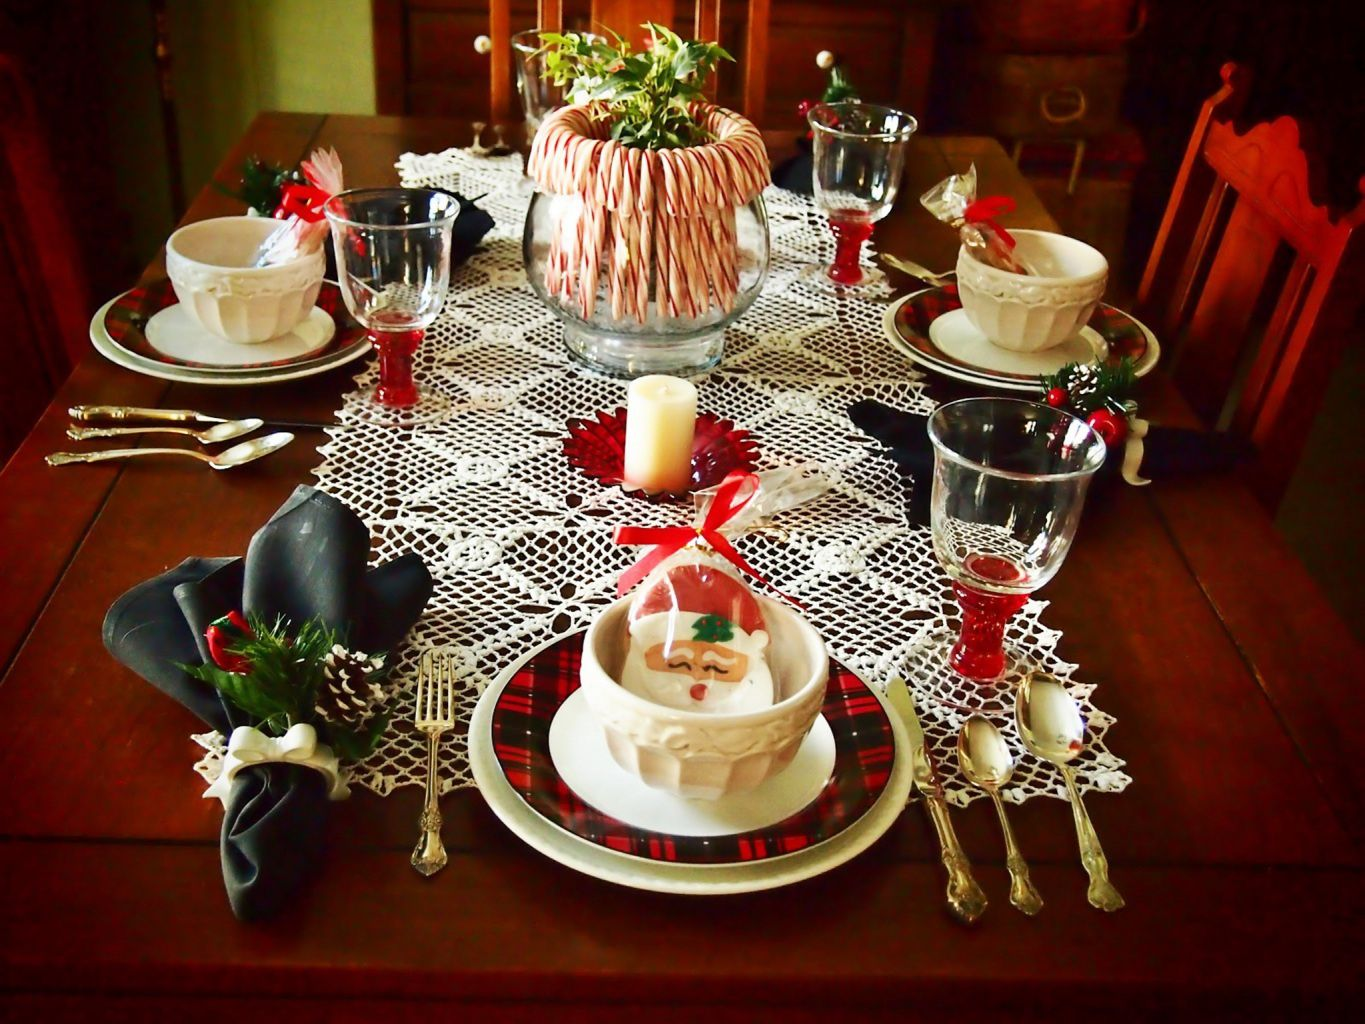 #BC220F Bon Appétit Décoration De Table Noël 2015 Wallpaper  6191 Decoration De Table De Noel Gratuit 1365x1024 px @ aertt.com